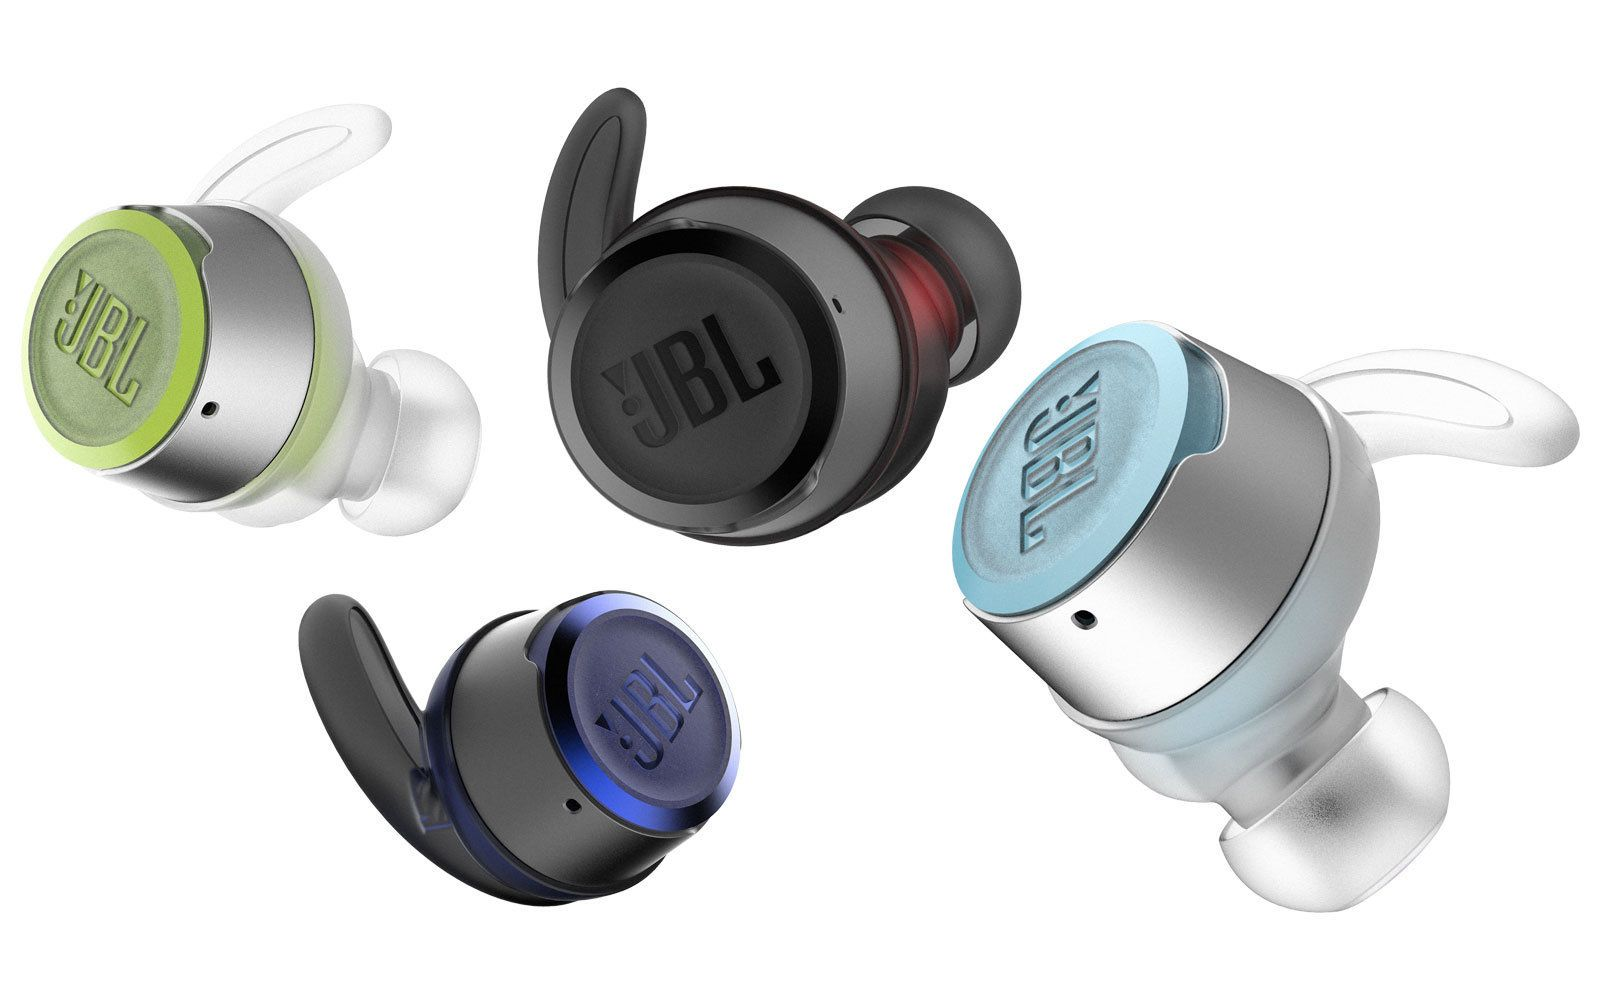 Jbl Unveils Four New Options For True Wireless Earbuds Wireless Earbuds Wireless Earphones Jbl Headphones